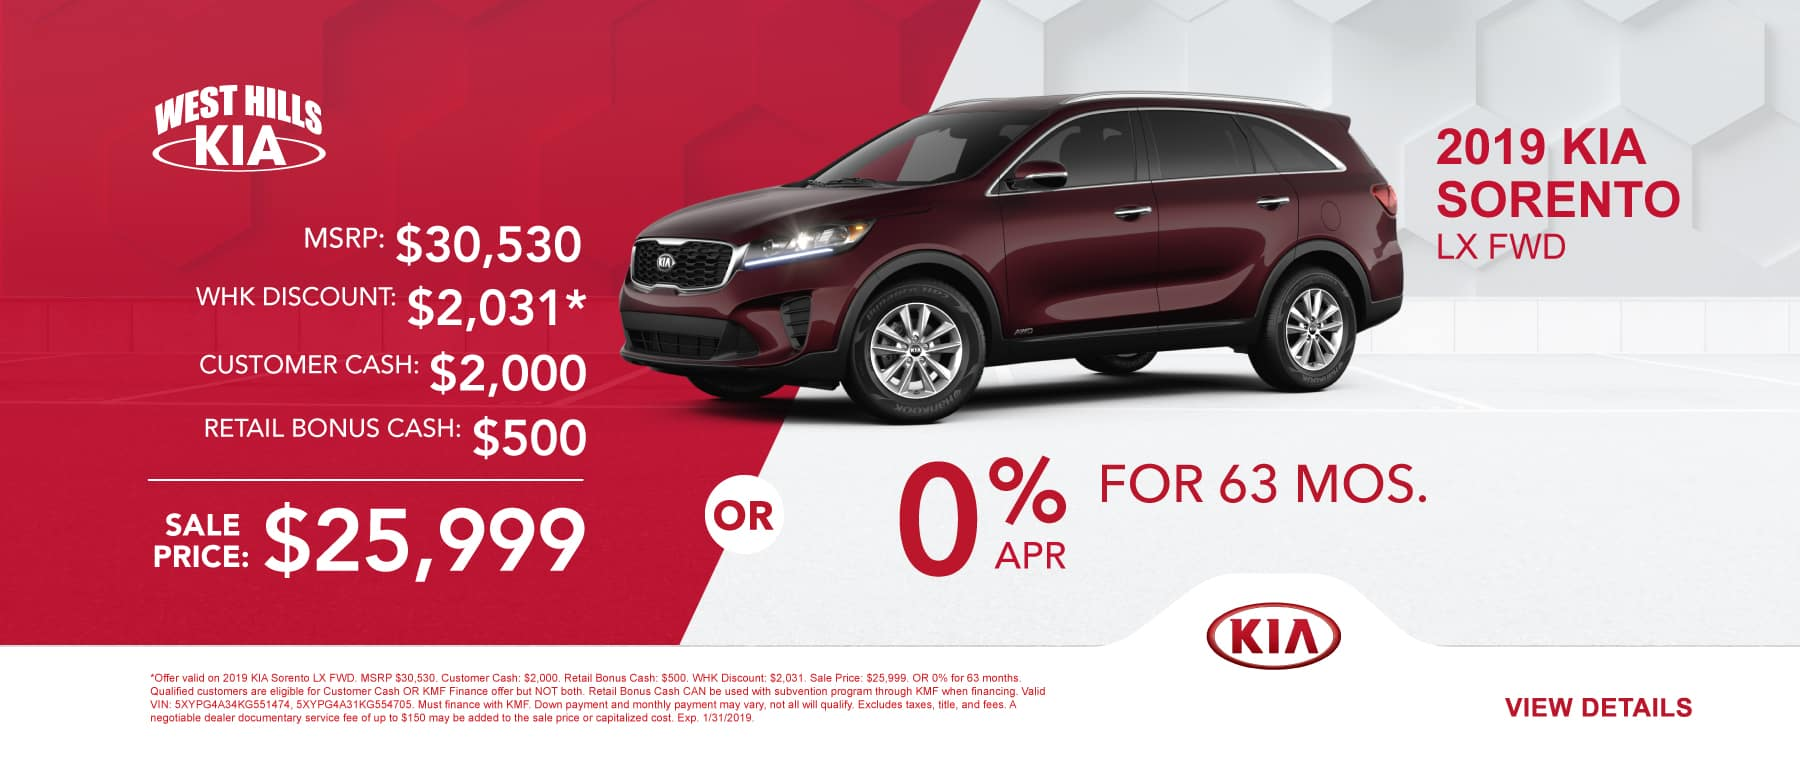 2019 KIA Sorento LX FWD MSRP: $30,530 Customer Cash: $2,000 and Retail Bonus Cash: $500 WHK Discount: $2,031 * Sale Price: $25,999 OR 0% for 63 months   *Offer valid on 2019 KIA Sorento LX FWD. MSRP $30,530. Customer Cash: $2,000. Retail Bonus Cash: $500. WHK Discount: $2,031. Sale Price: $25,999. OR 0% for 63 months. Qualified customers are eligible for Customer Cash OR KMF Finance offer but NOT both. Retail Bonus Cash CAN be used with subvention program through KMF when financing. Valid VIN: 5XYPG4A34KG551474, 5XYPG4A31KG554705. Must finance with KMF. Down payment and monthly payment may vary, not all will qualify. Excludes taxes, title, and fees. A negotiable dealer documentary service fee of up to $150 may be added to the sale price or capitalized cost. Exp. 1/31/2019.